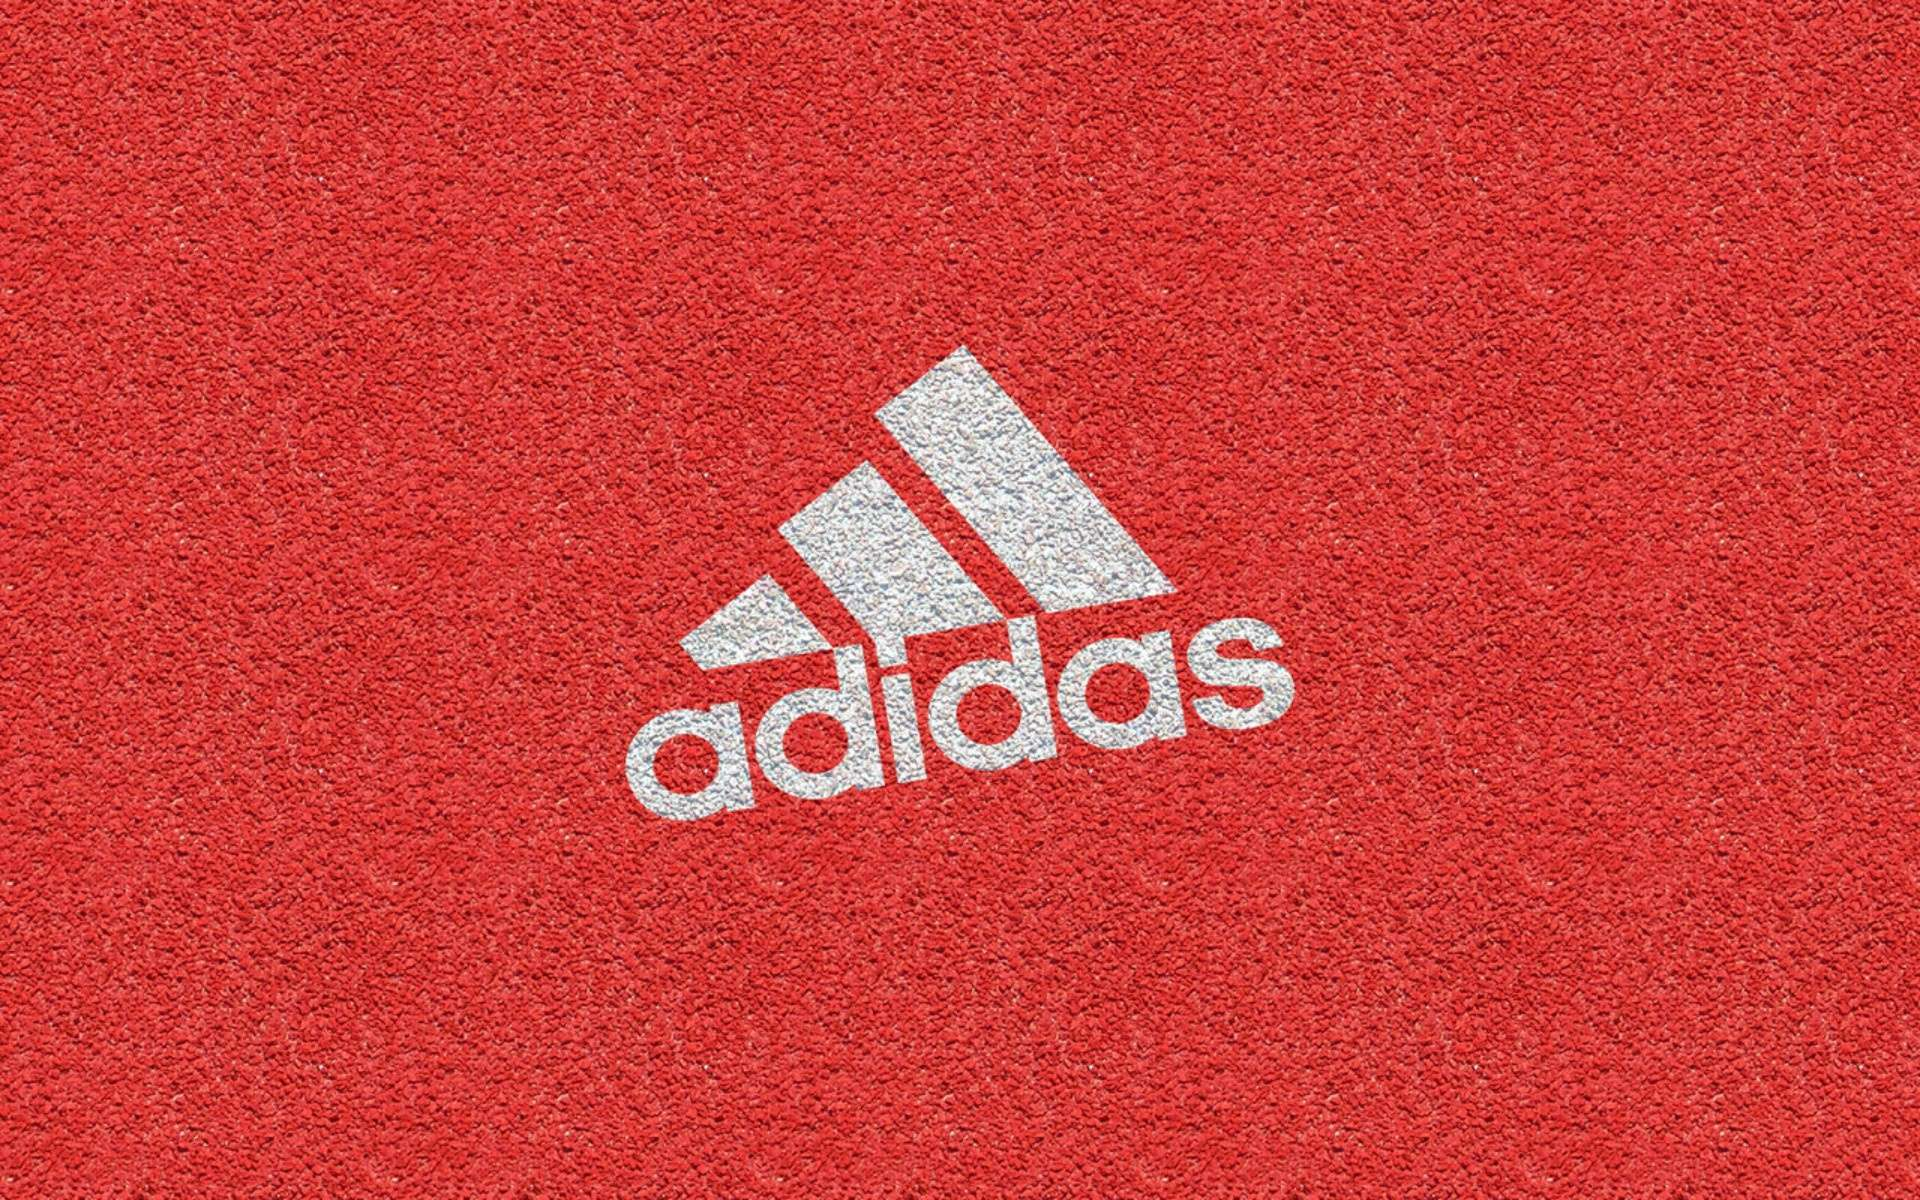 Adidas Brand Wallpapers Wallpaper Cave